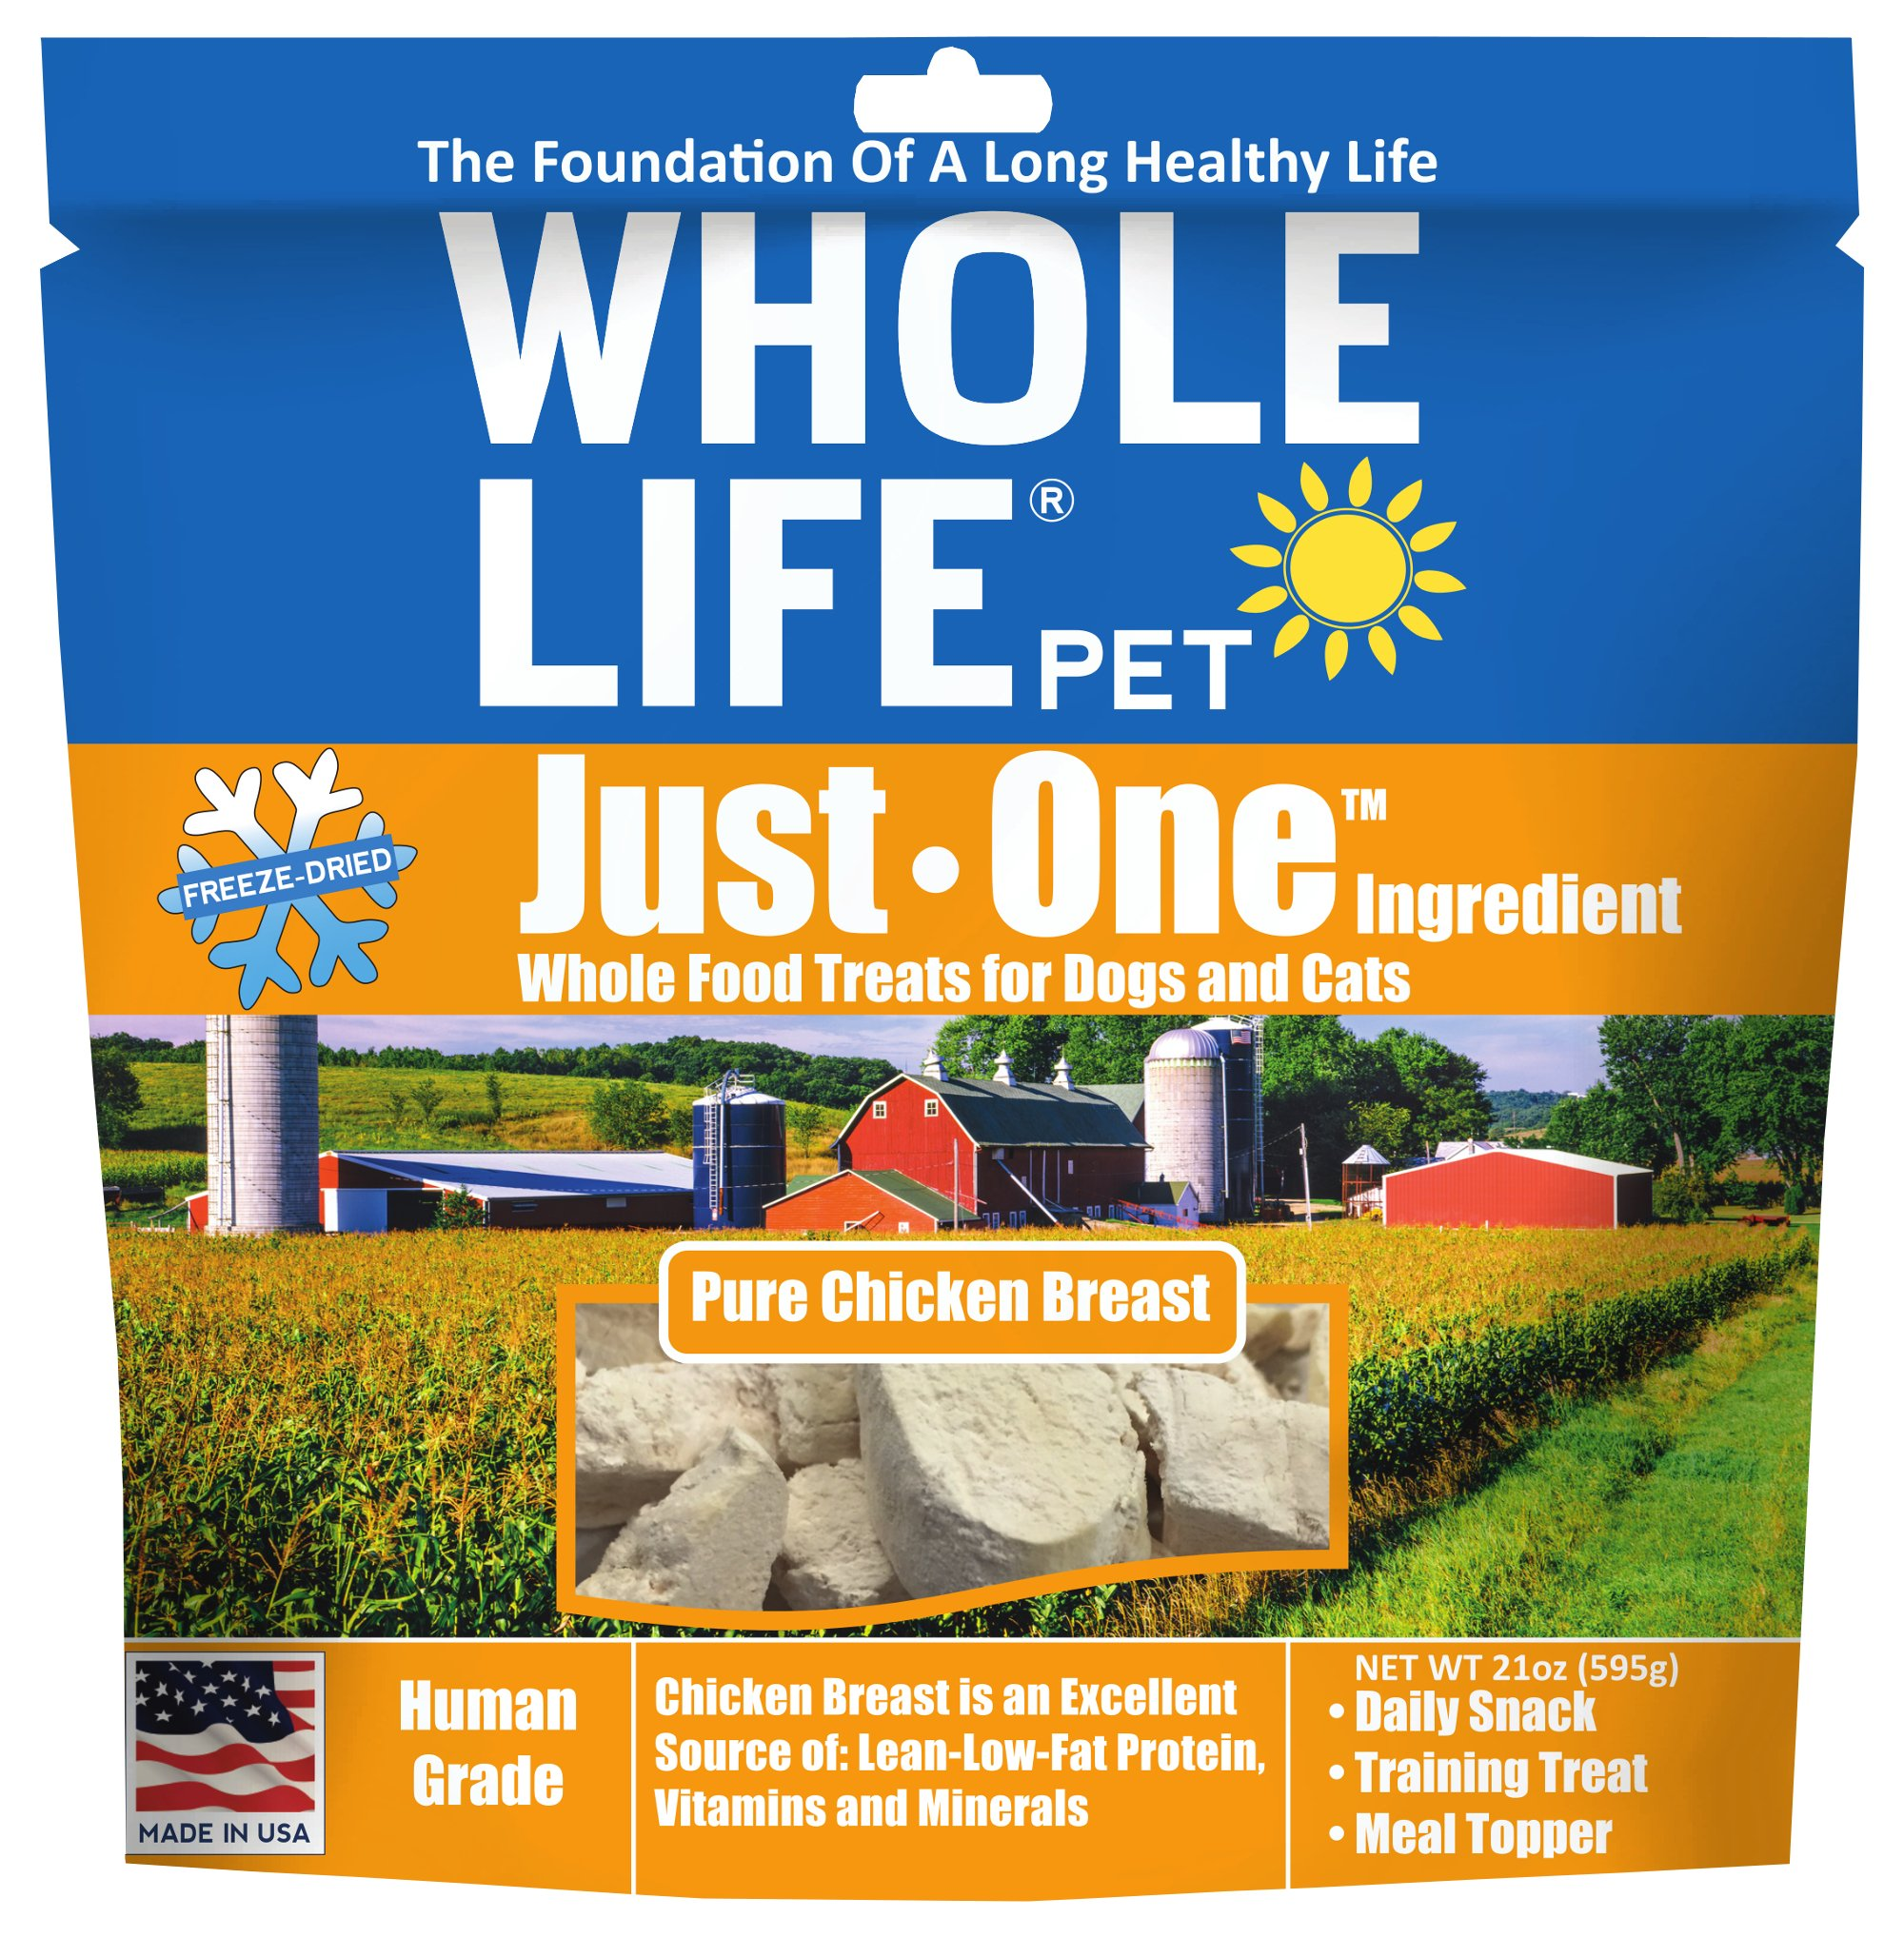 Whole Life Pet Single Ingredient Usa Freeze Dried Chicken Breast Treats Value Pack For Dogs And Cats, 21-Ounce by Whole Life Pet Products